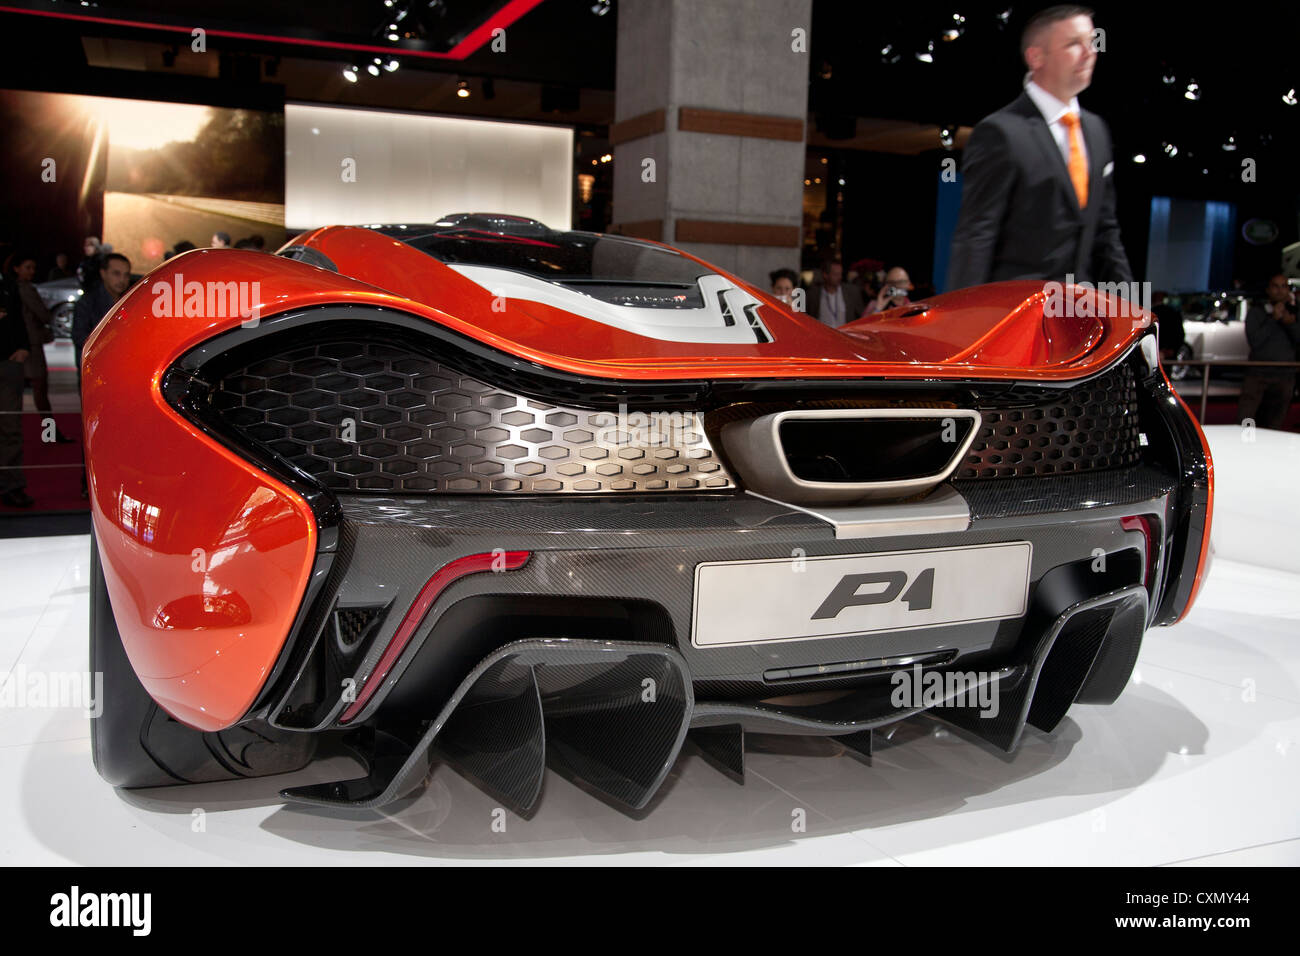 McLaren P1 Super Car At The Paris Motor Show 2012   Stock Image